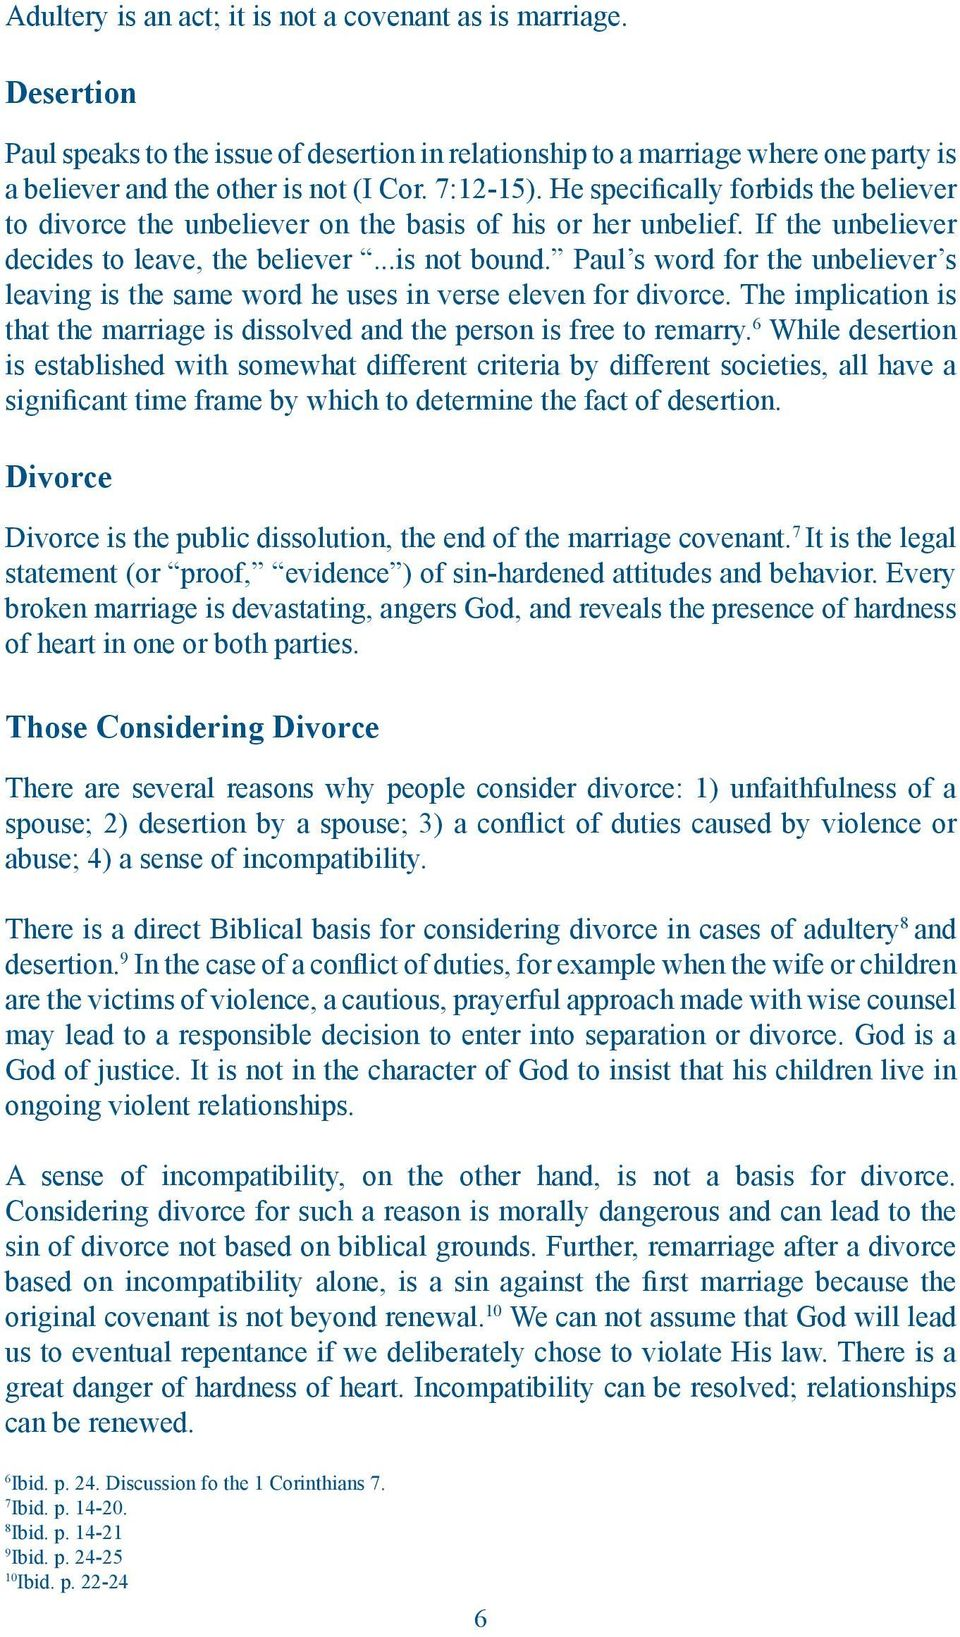 Position Paper  Divorce and Remarriage - PDF